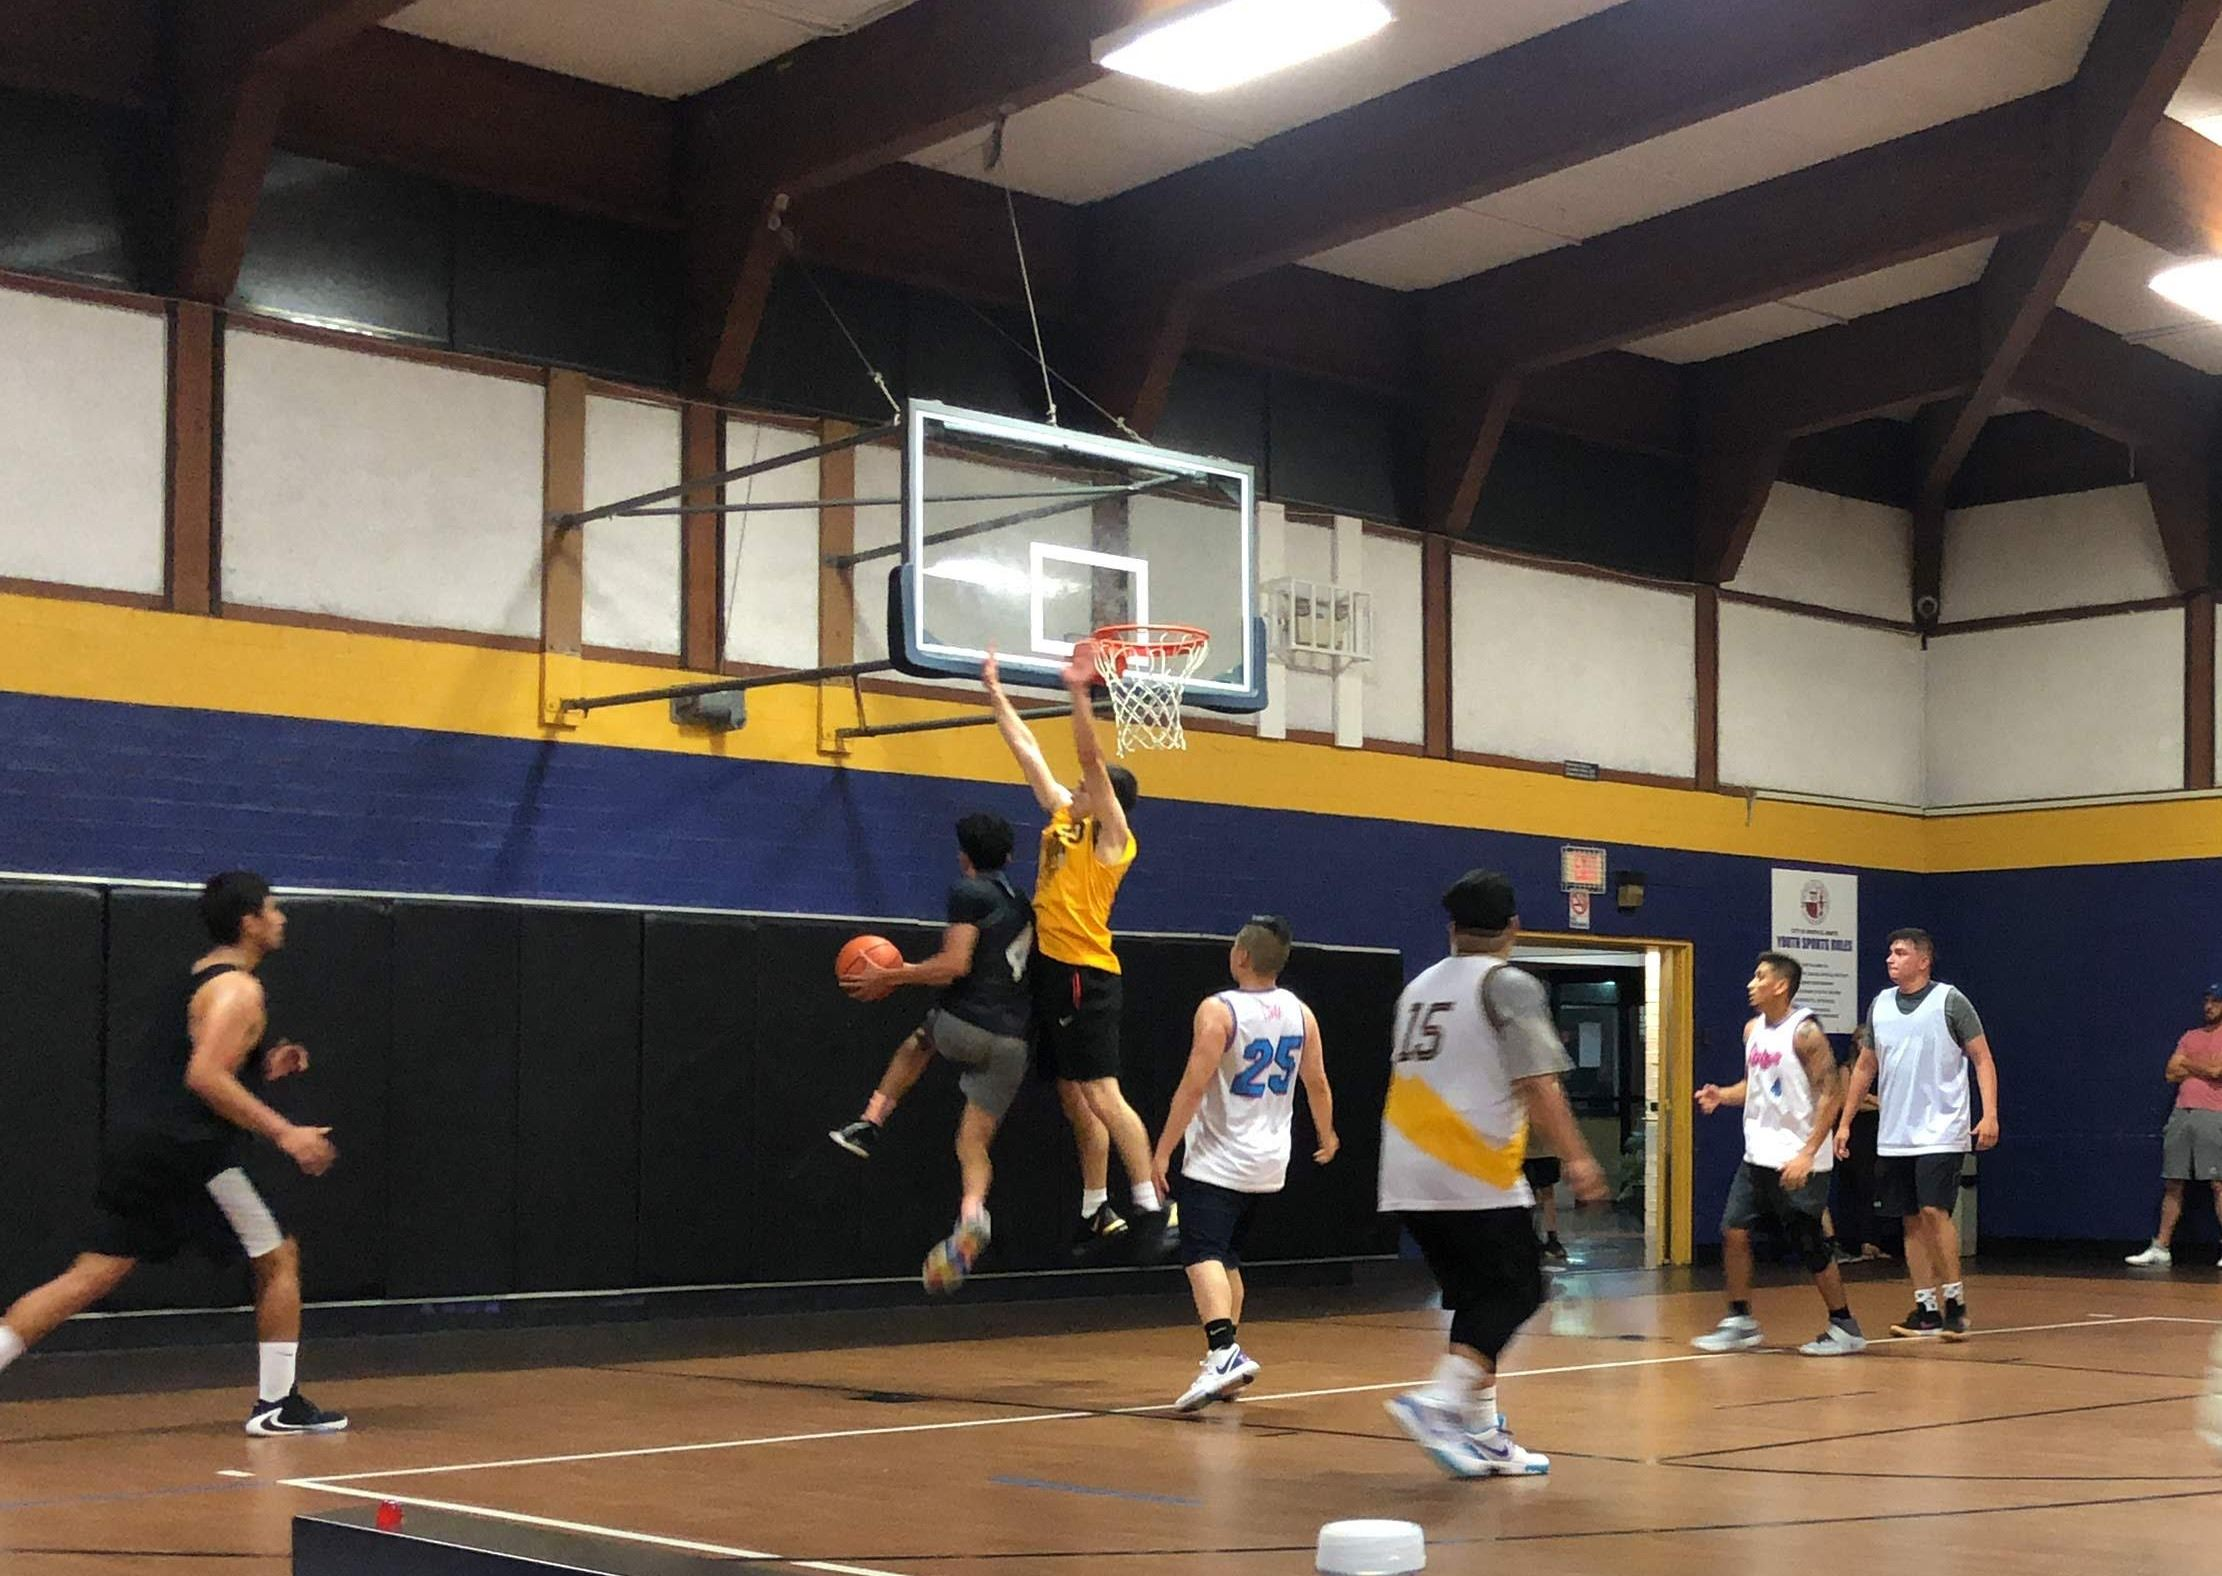 Adult Basketball game